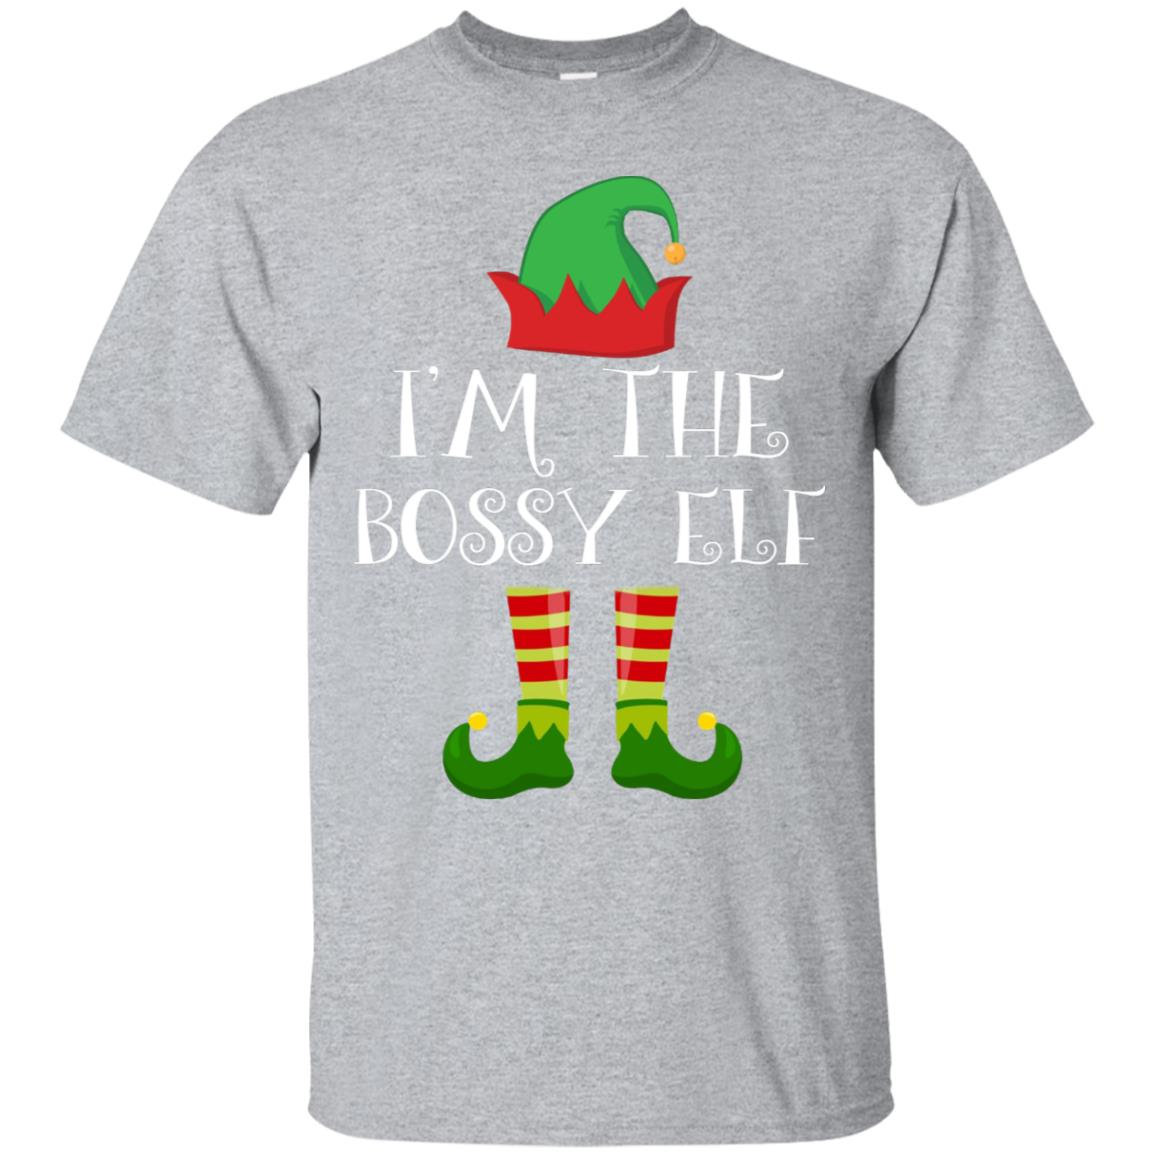 I'm The Bossy Elf Matching Family Group Christmas T Shirt 99promocode